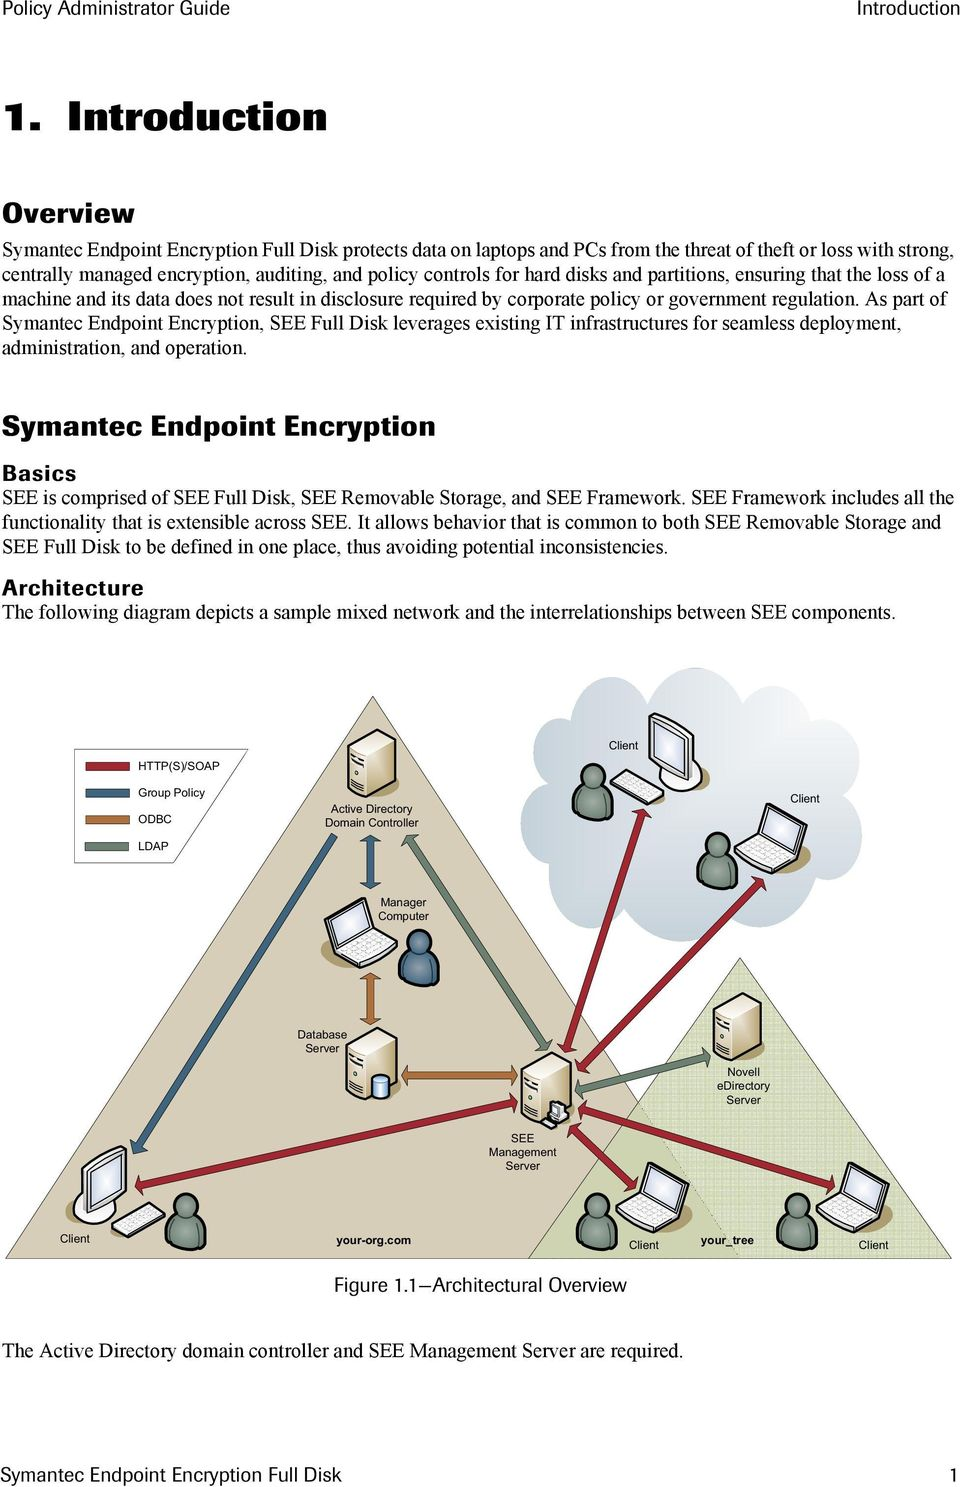 symantec endpoint protection architecture diagram 1981 porsche 924 wiring encryption full disk pdf 1 for hard disks and partitions ensuring that the loss of a machine its data